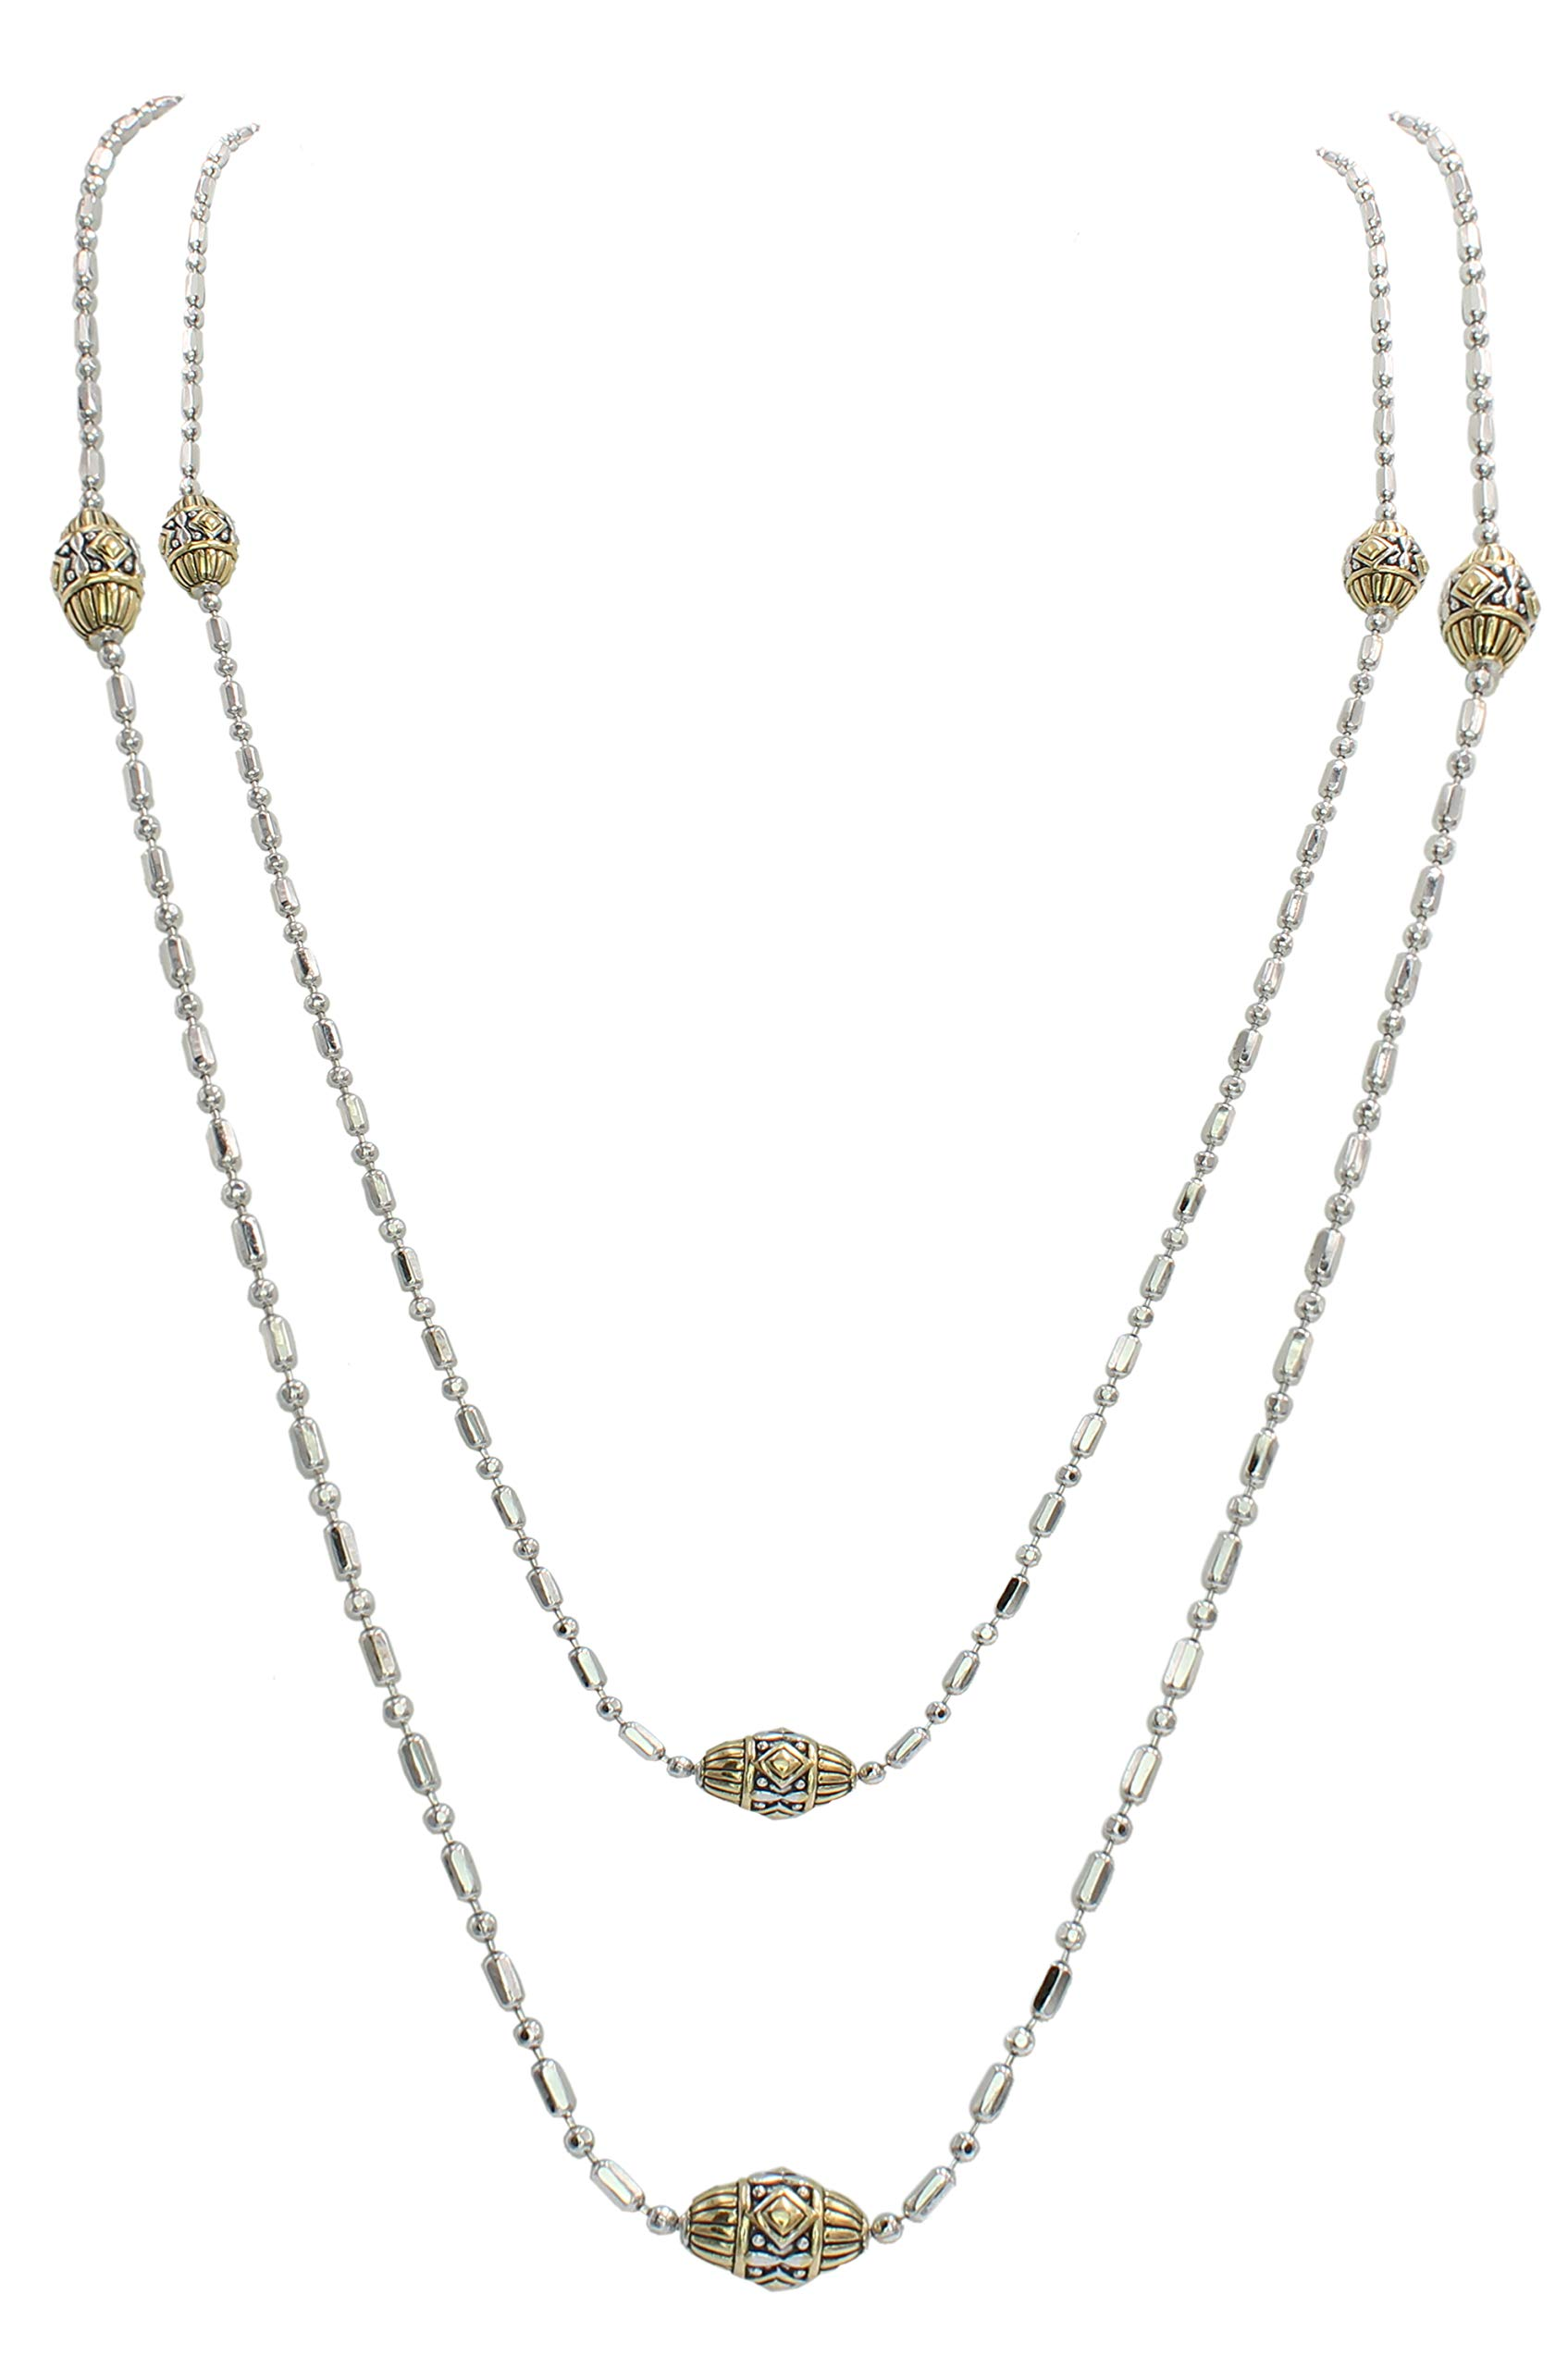 John Medeiros Gold and Silver Tone Long Strand 38'' Necklace with Handcrafted Charms Made in America by John Medeiros (Image #1)